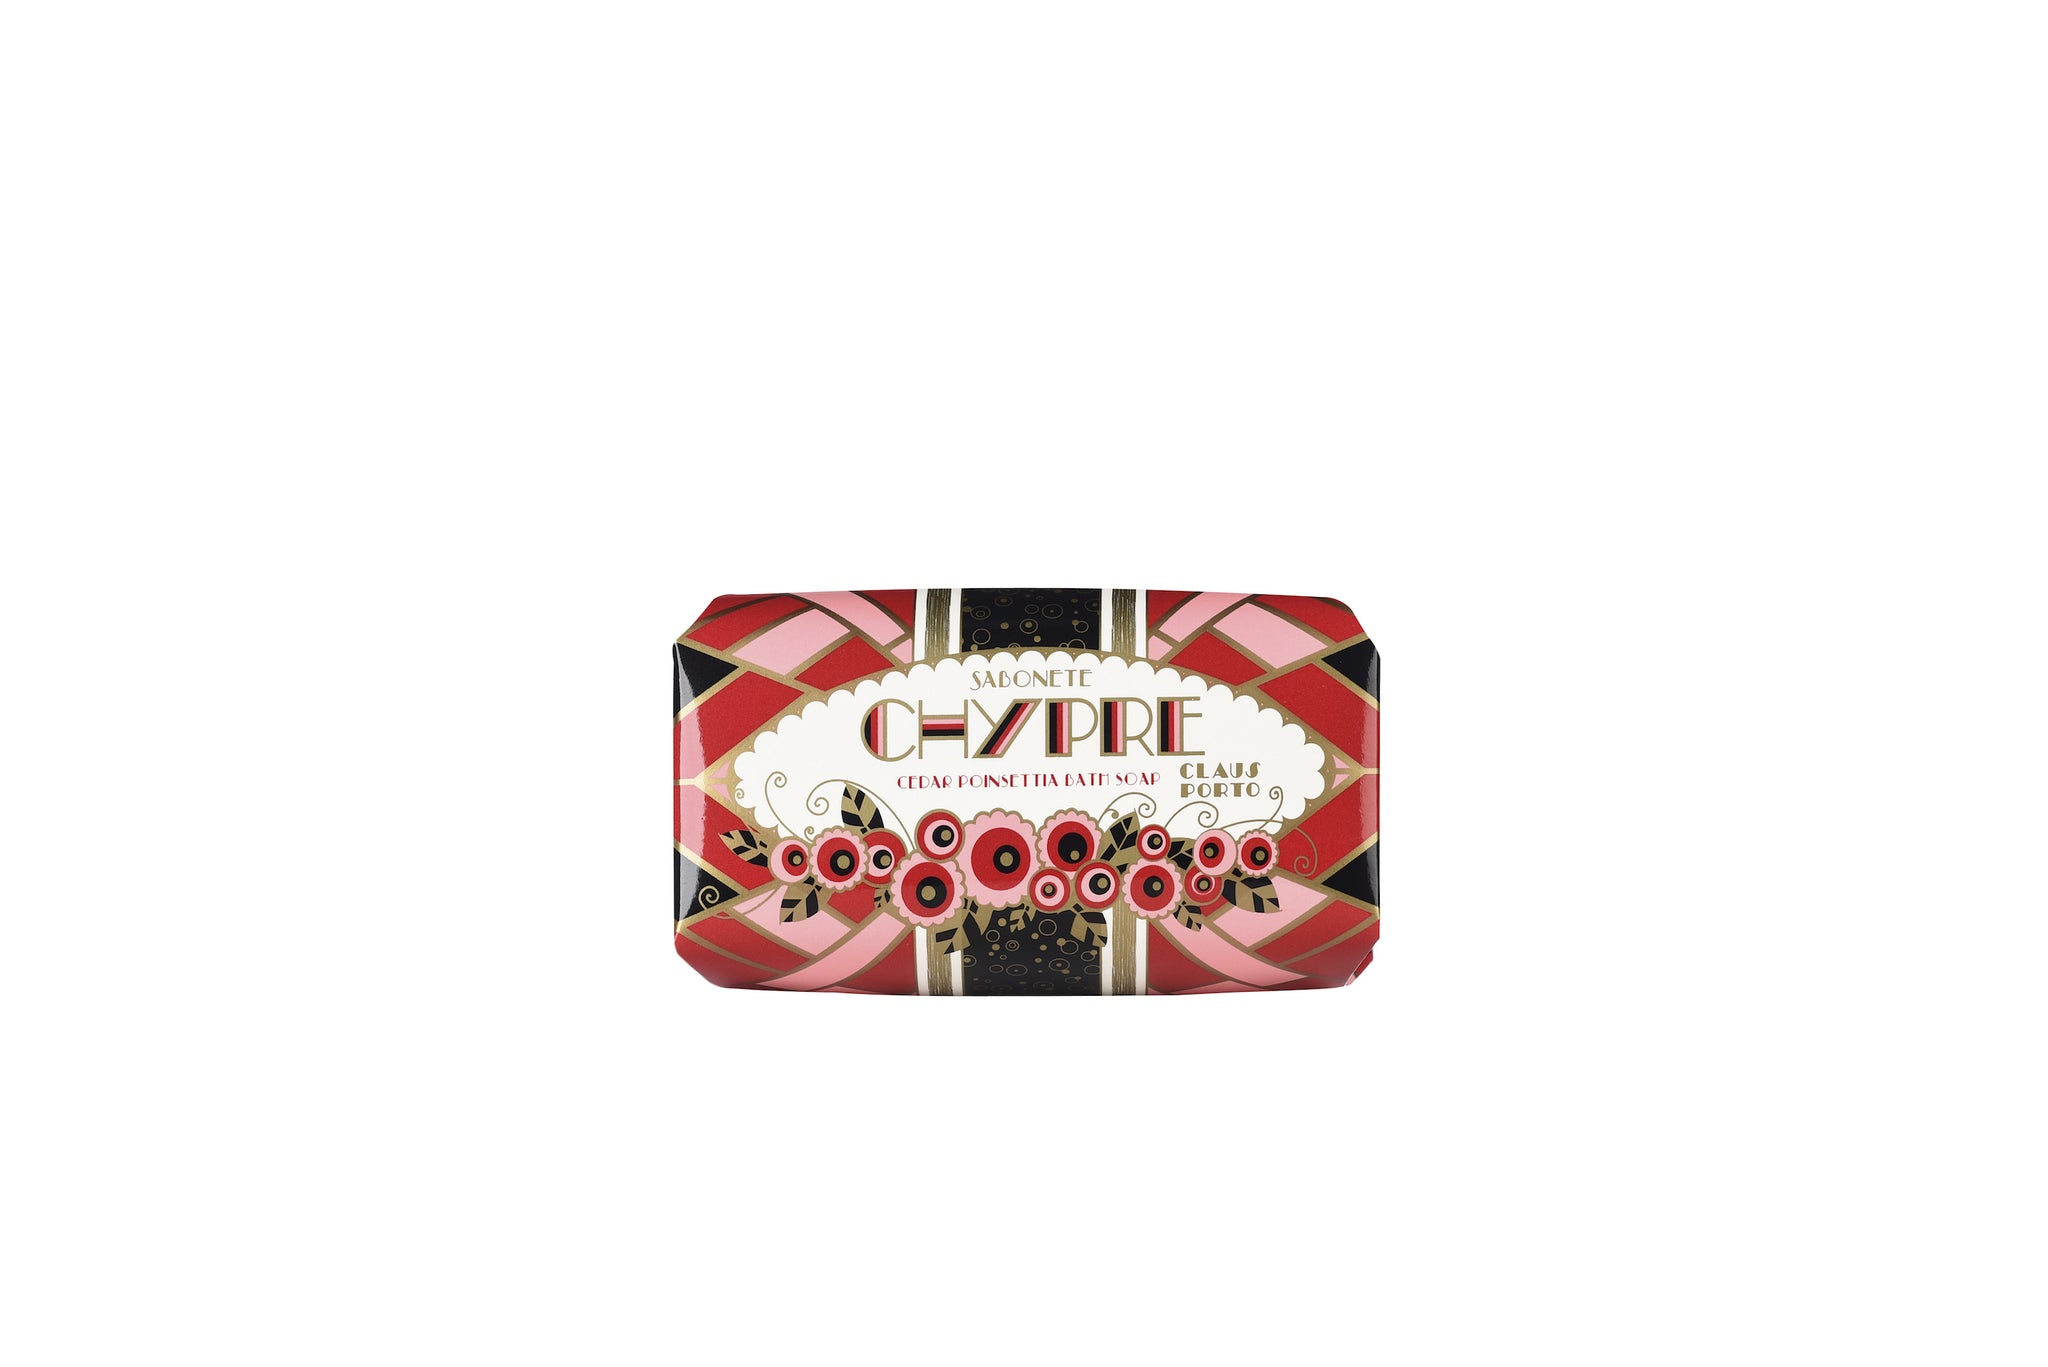 Chypre - Cedar Poinsettia, Deco Soap Bar, 150g